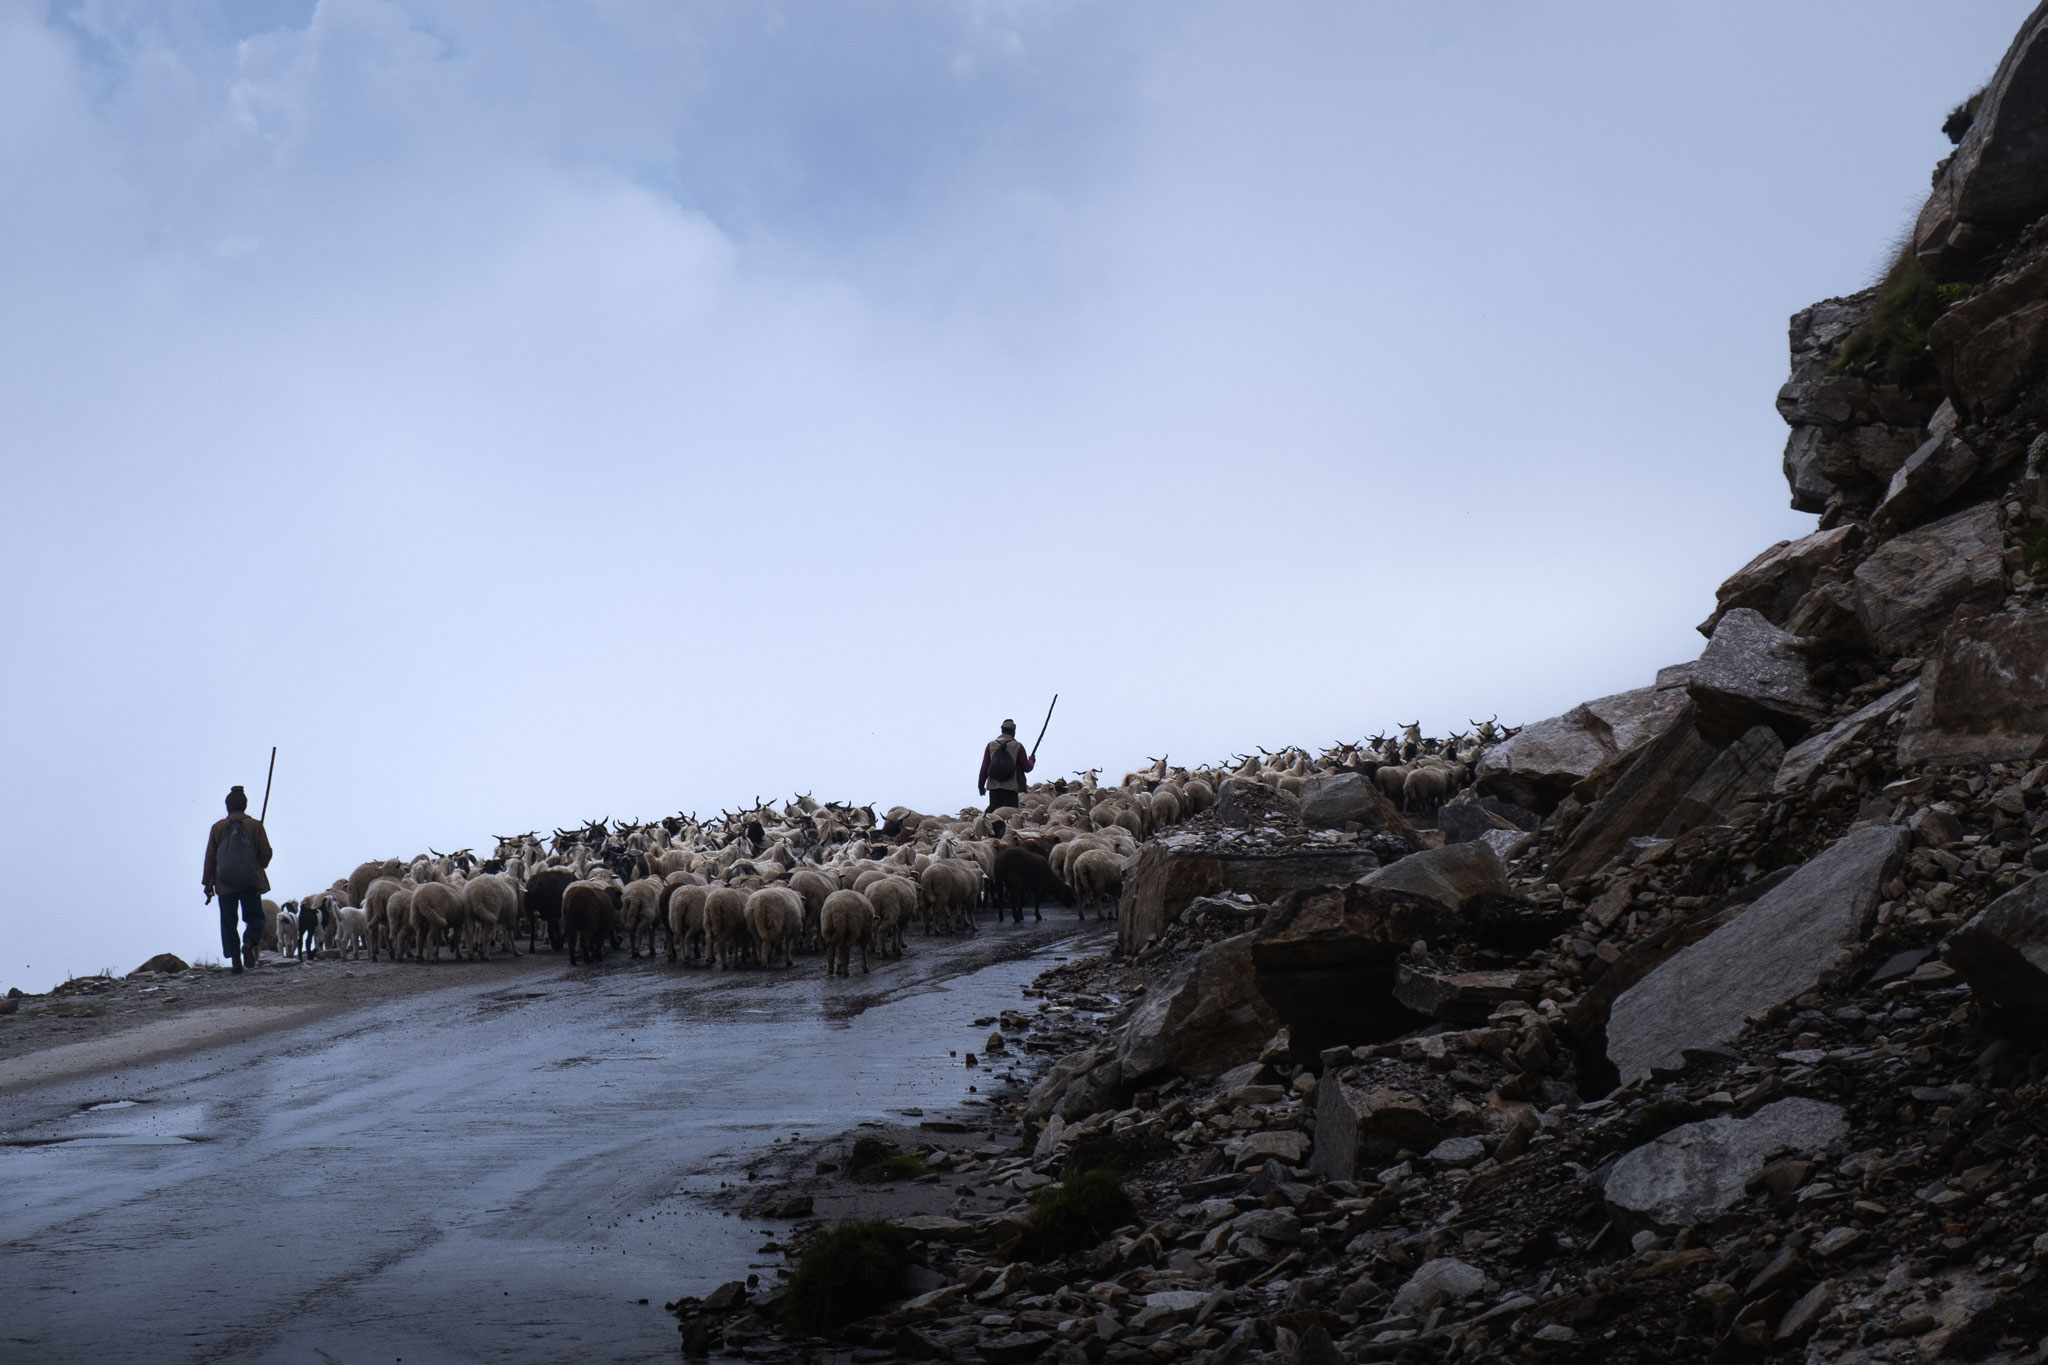 SHEPHERDS ON THE ROAD - HIMACHAL PRADESH - INDIA